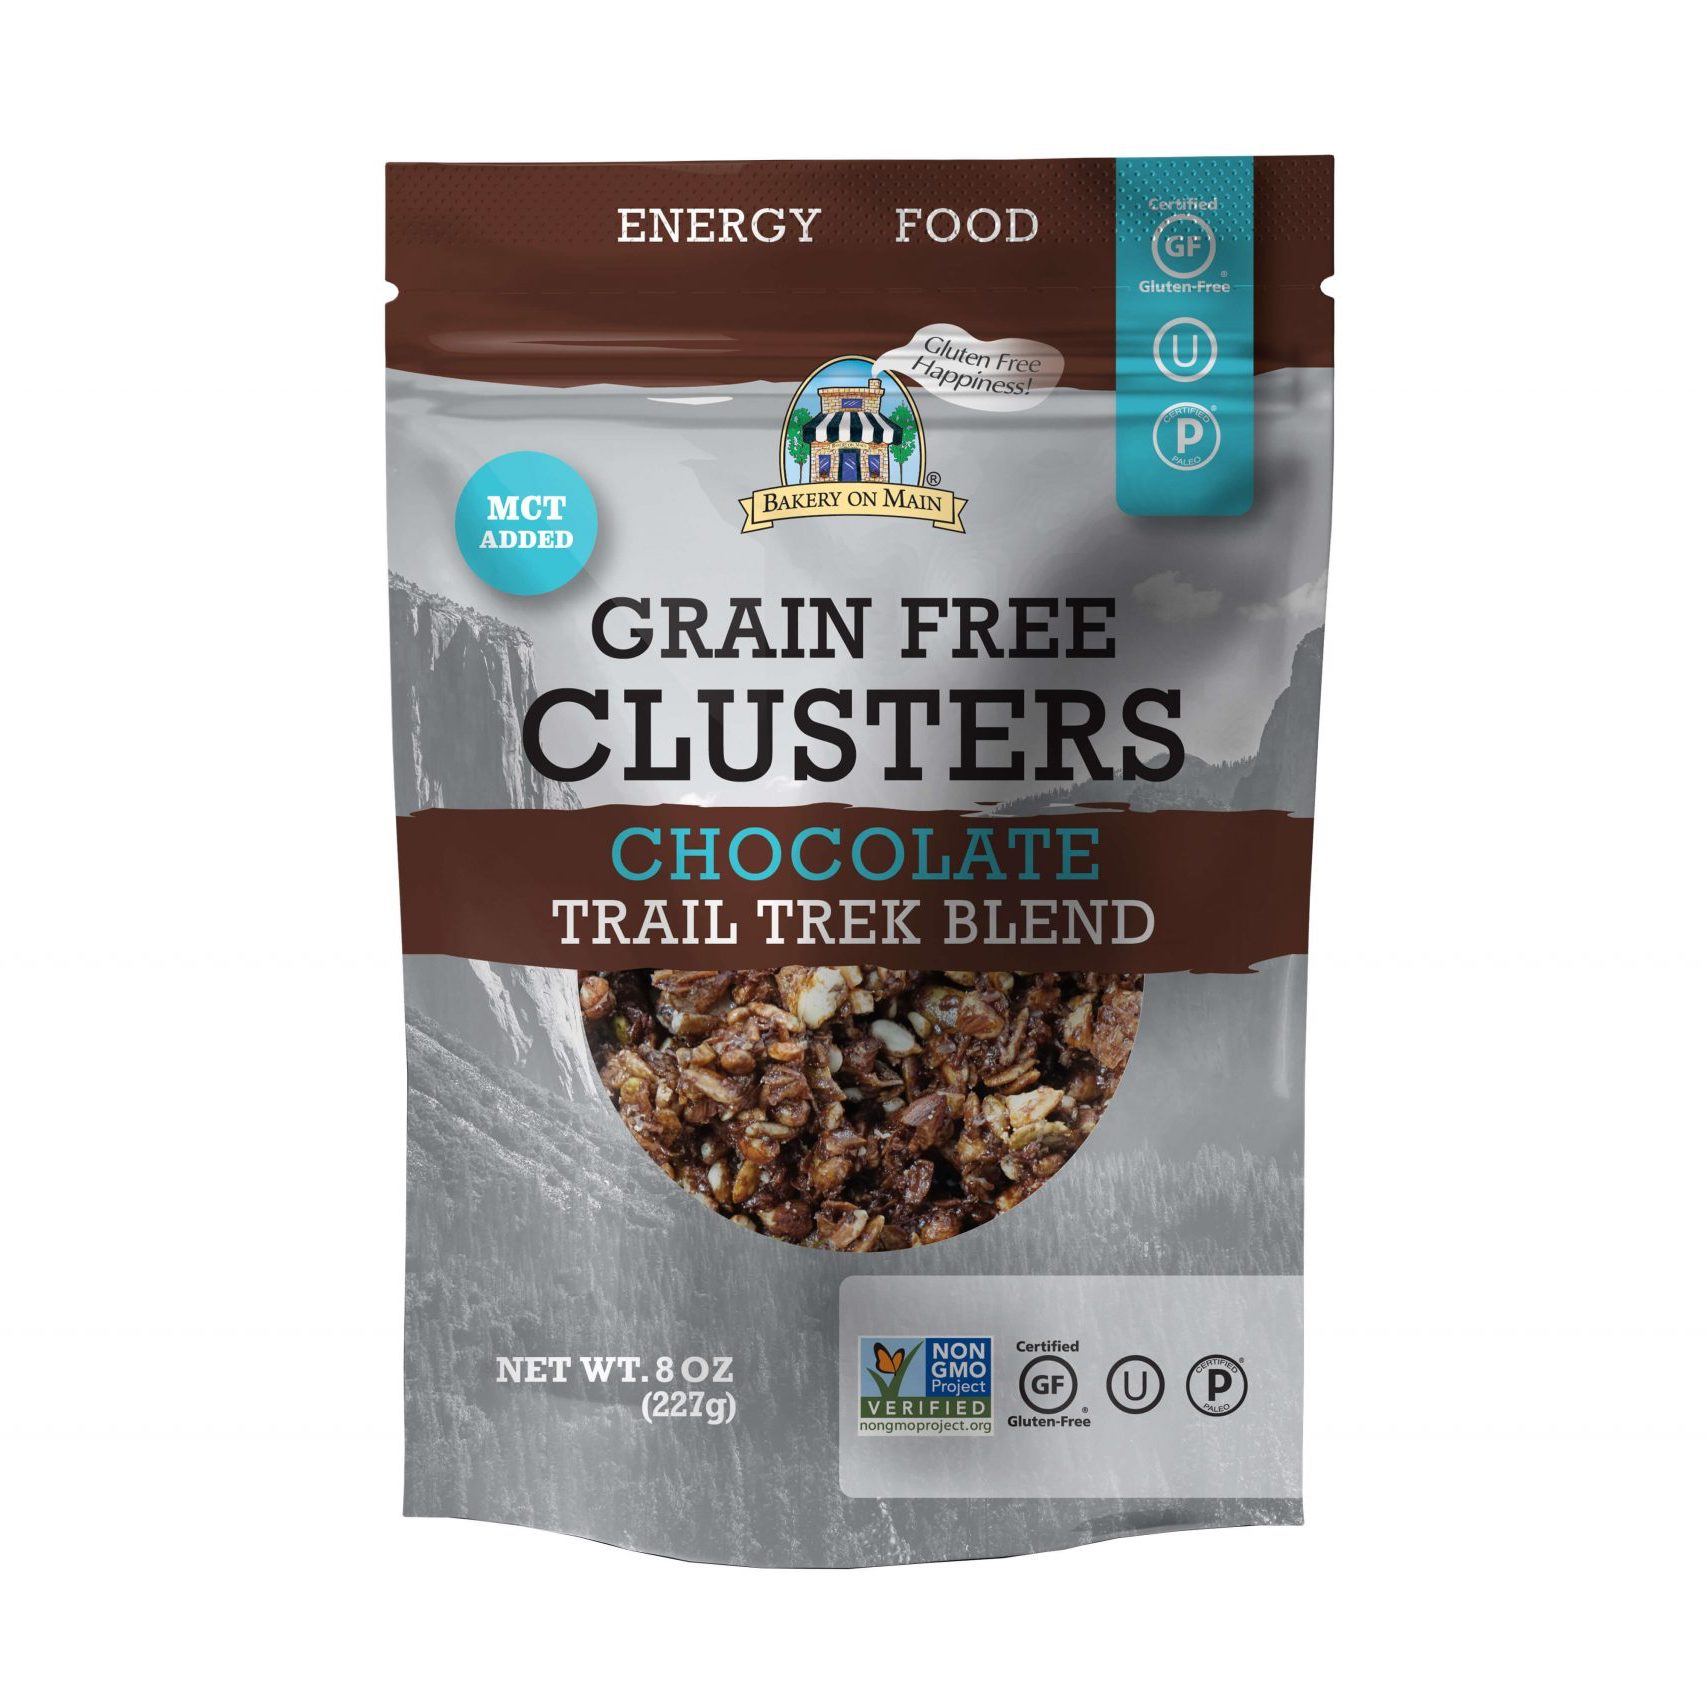 Grain-Free Clusters Chocolate Trail Trek Blend - Bakery on Main - Keto Certified by the Paleo Foundation